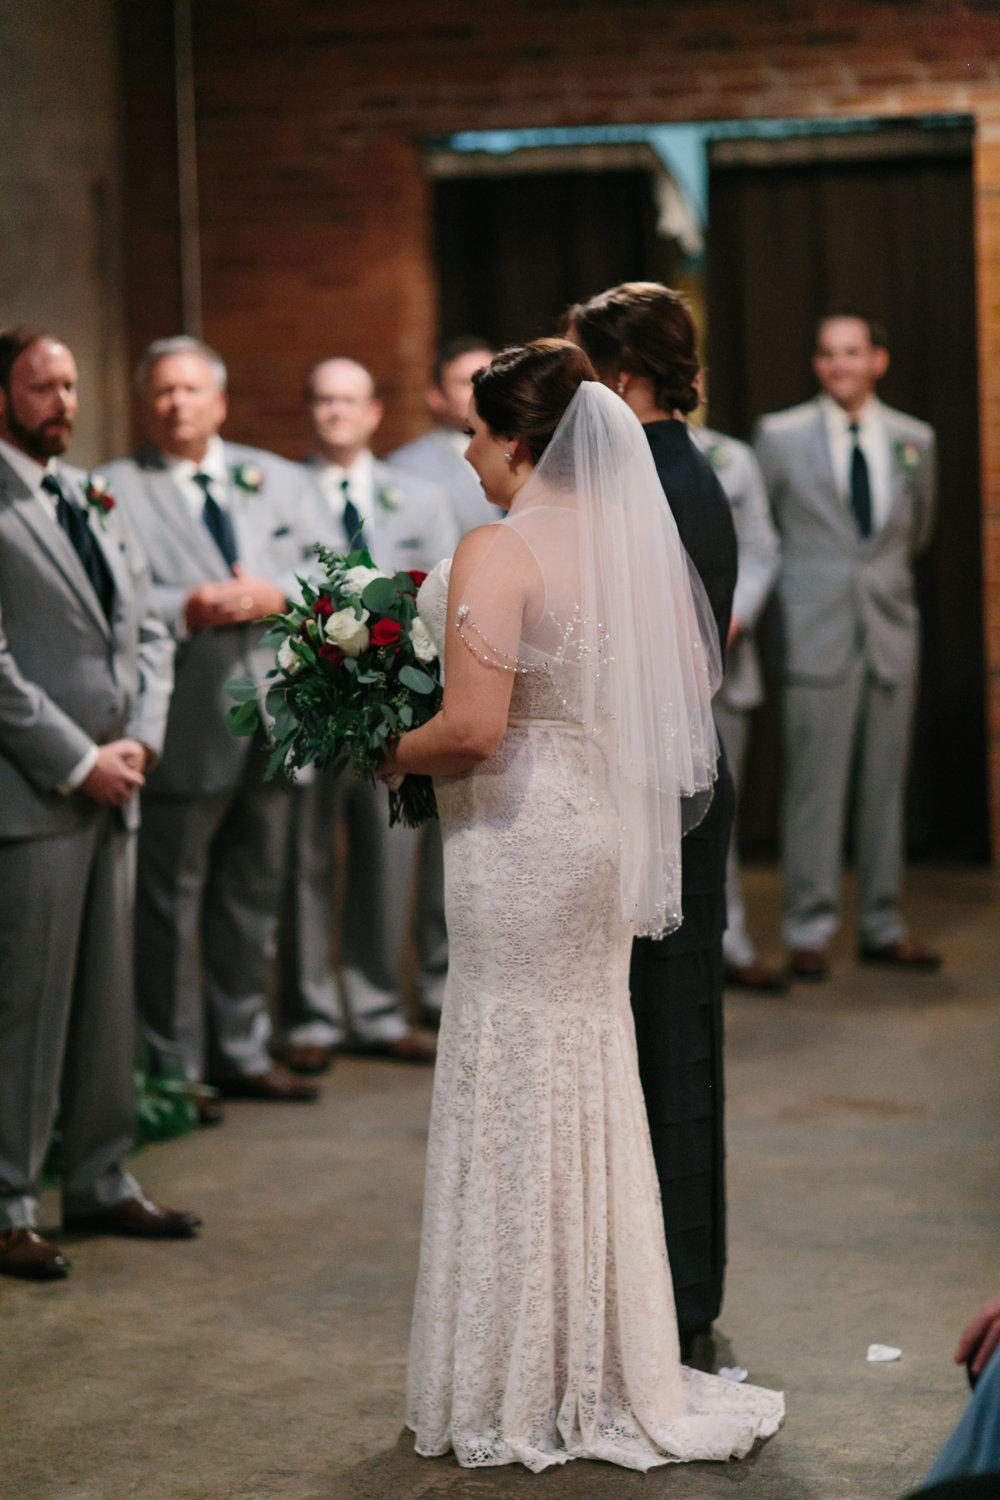 Jessica_Bryan_Wedding_Standard_Knoxville_Abigail_Malone_Photography-540.jpg